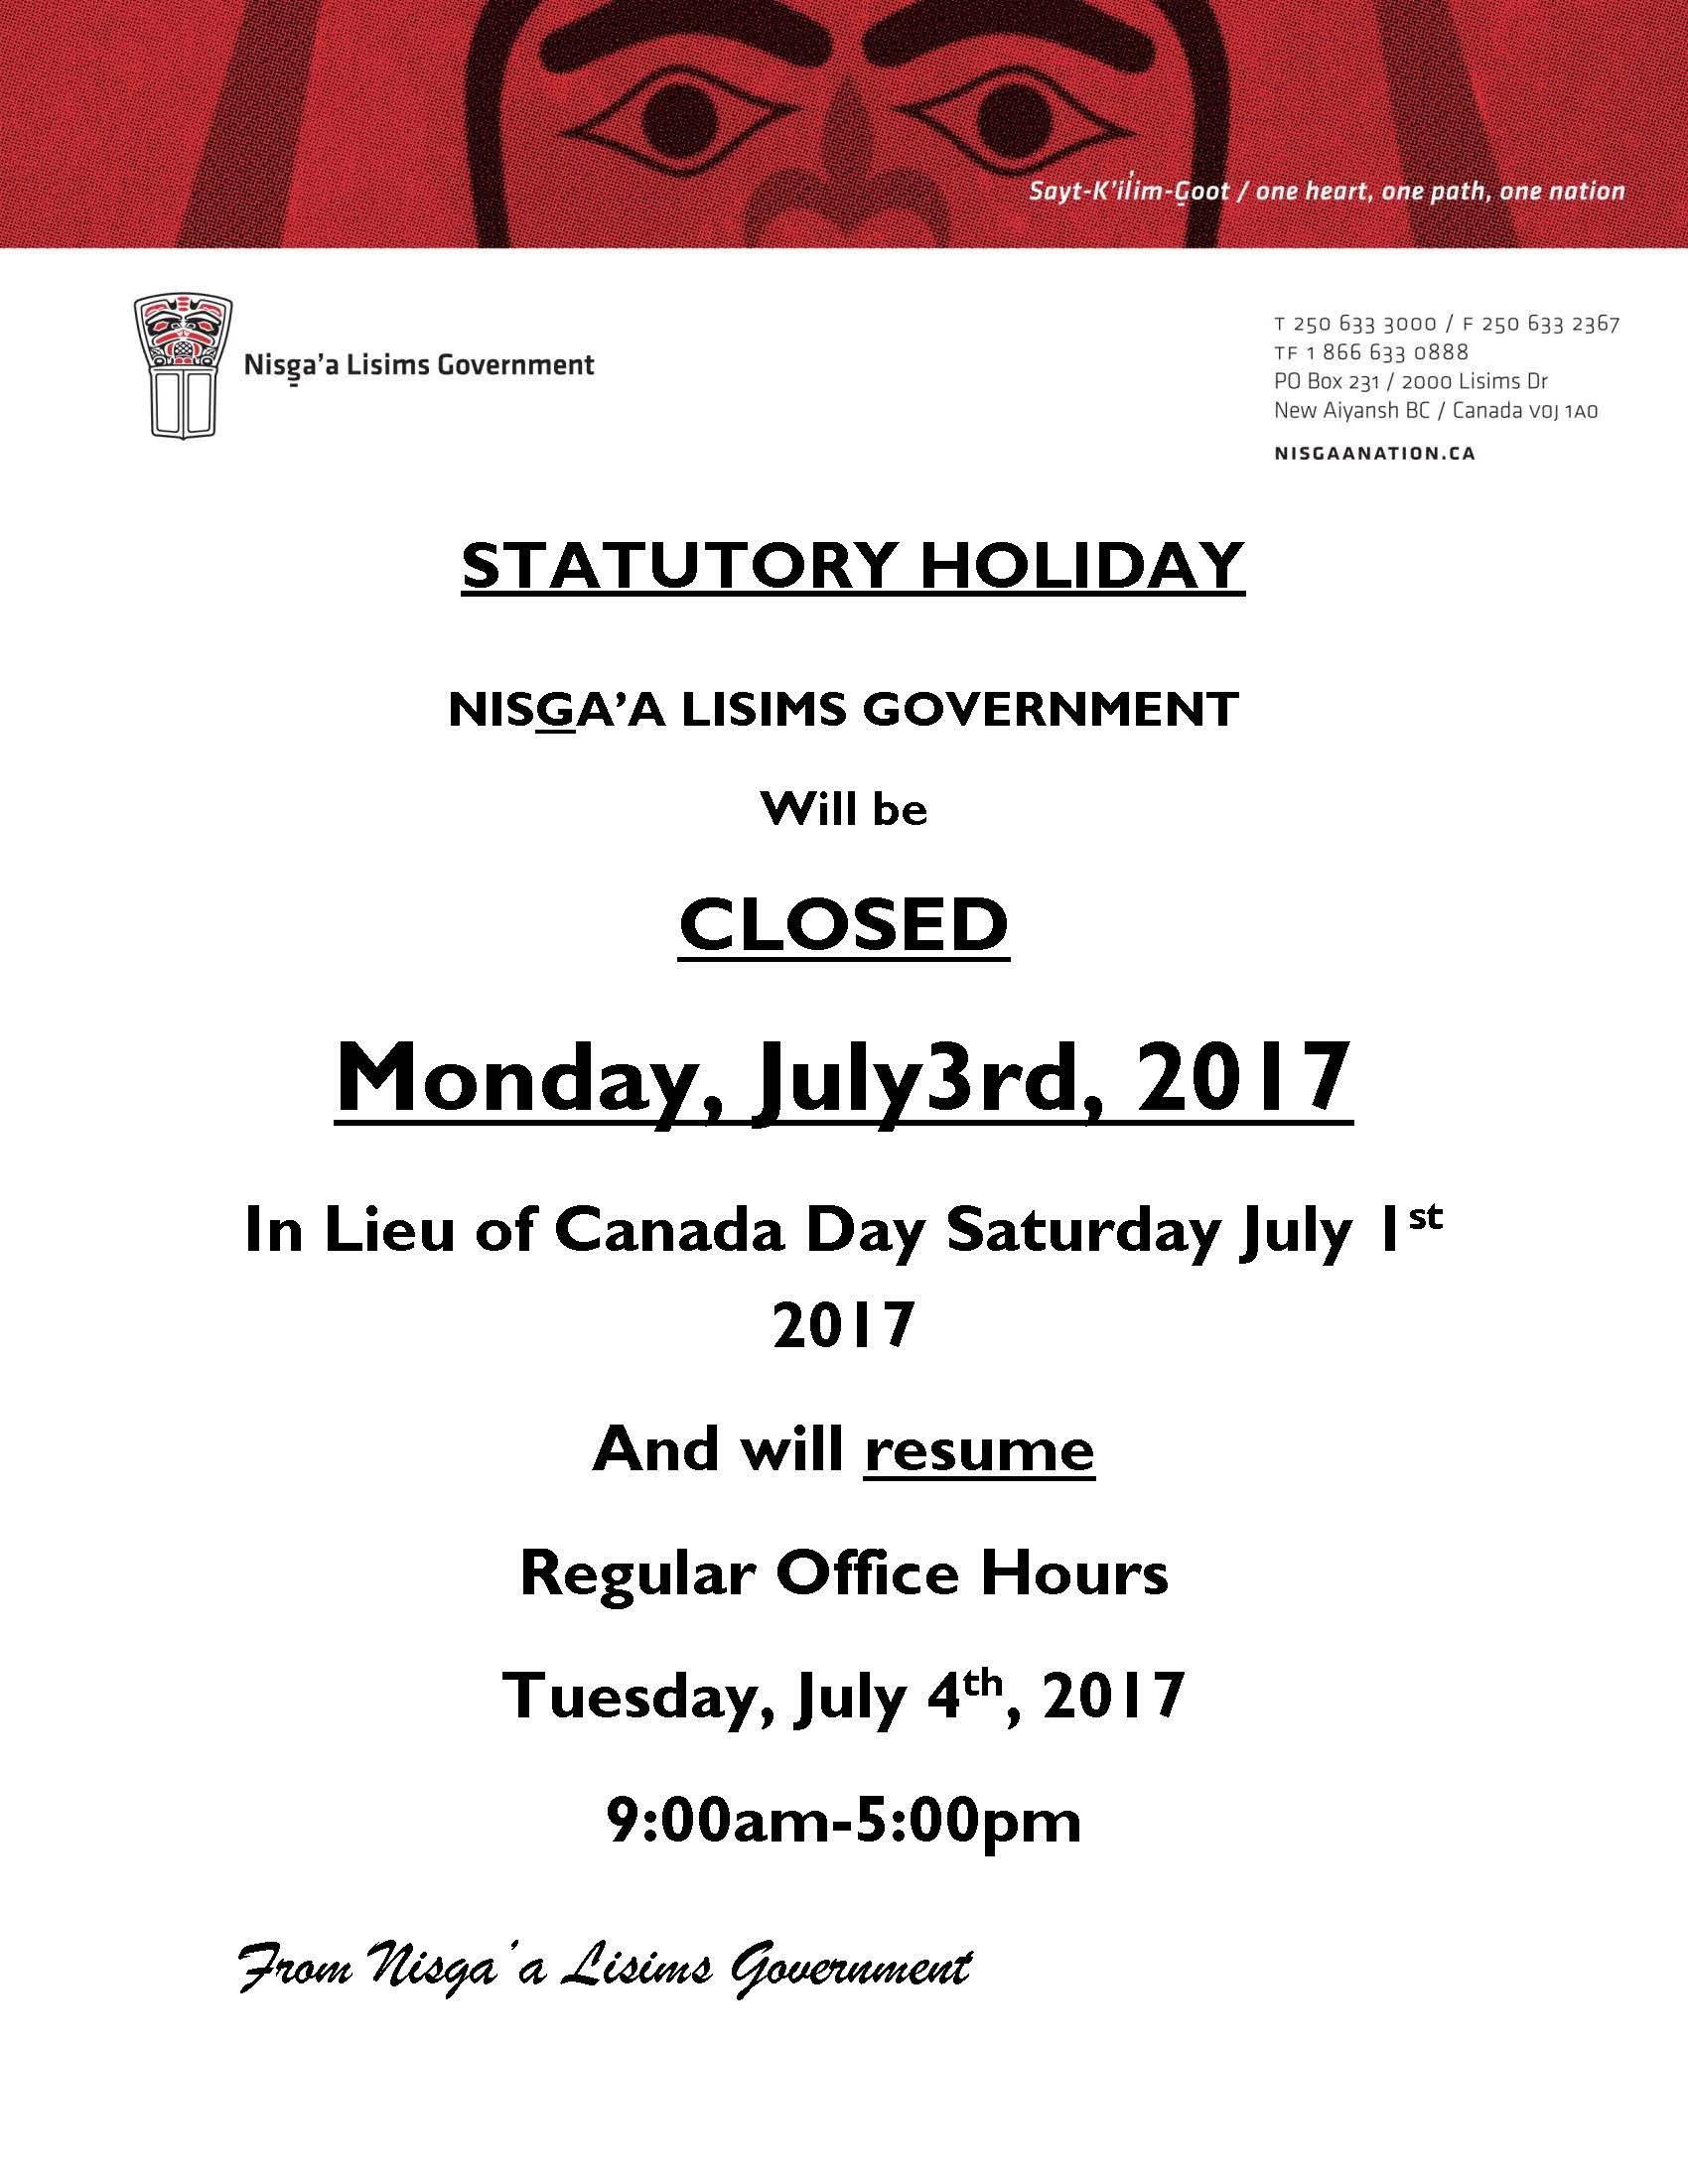 What Holiday Is On Monday In Canada Lifehacked1st Com